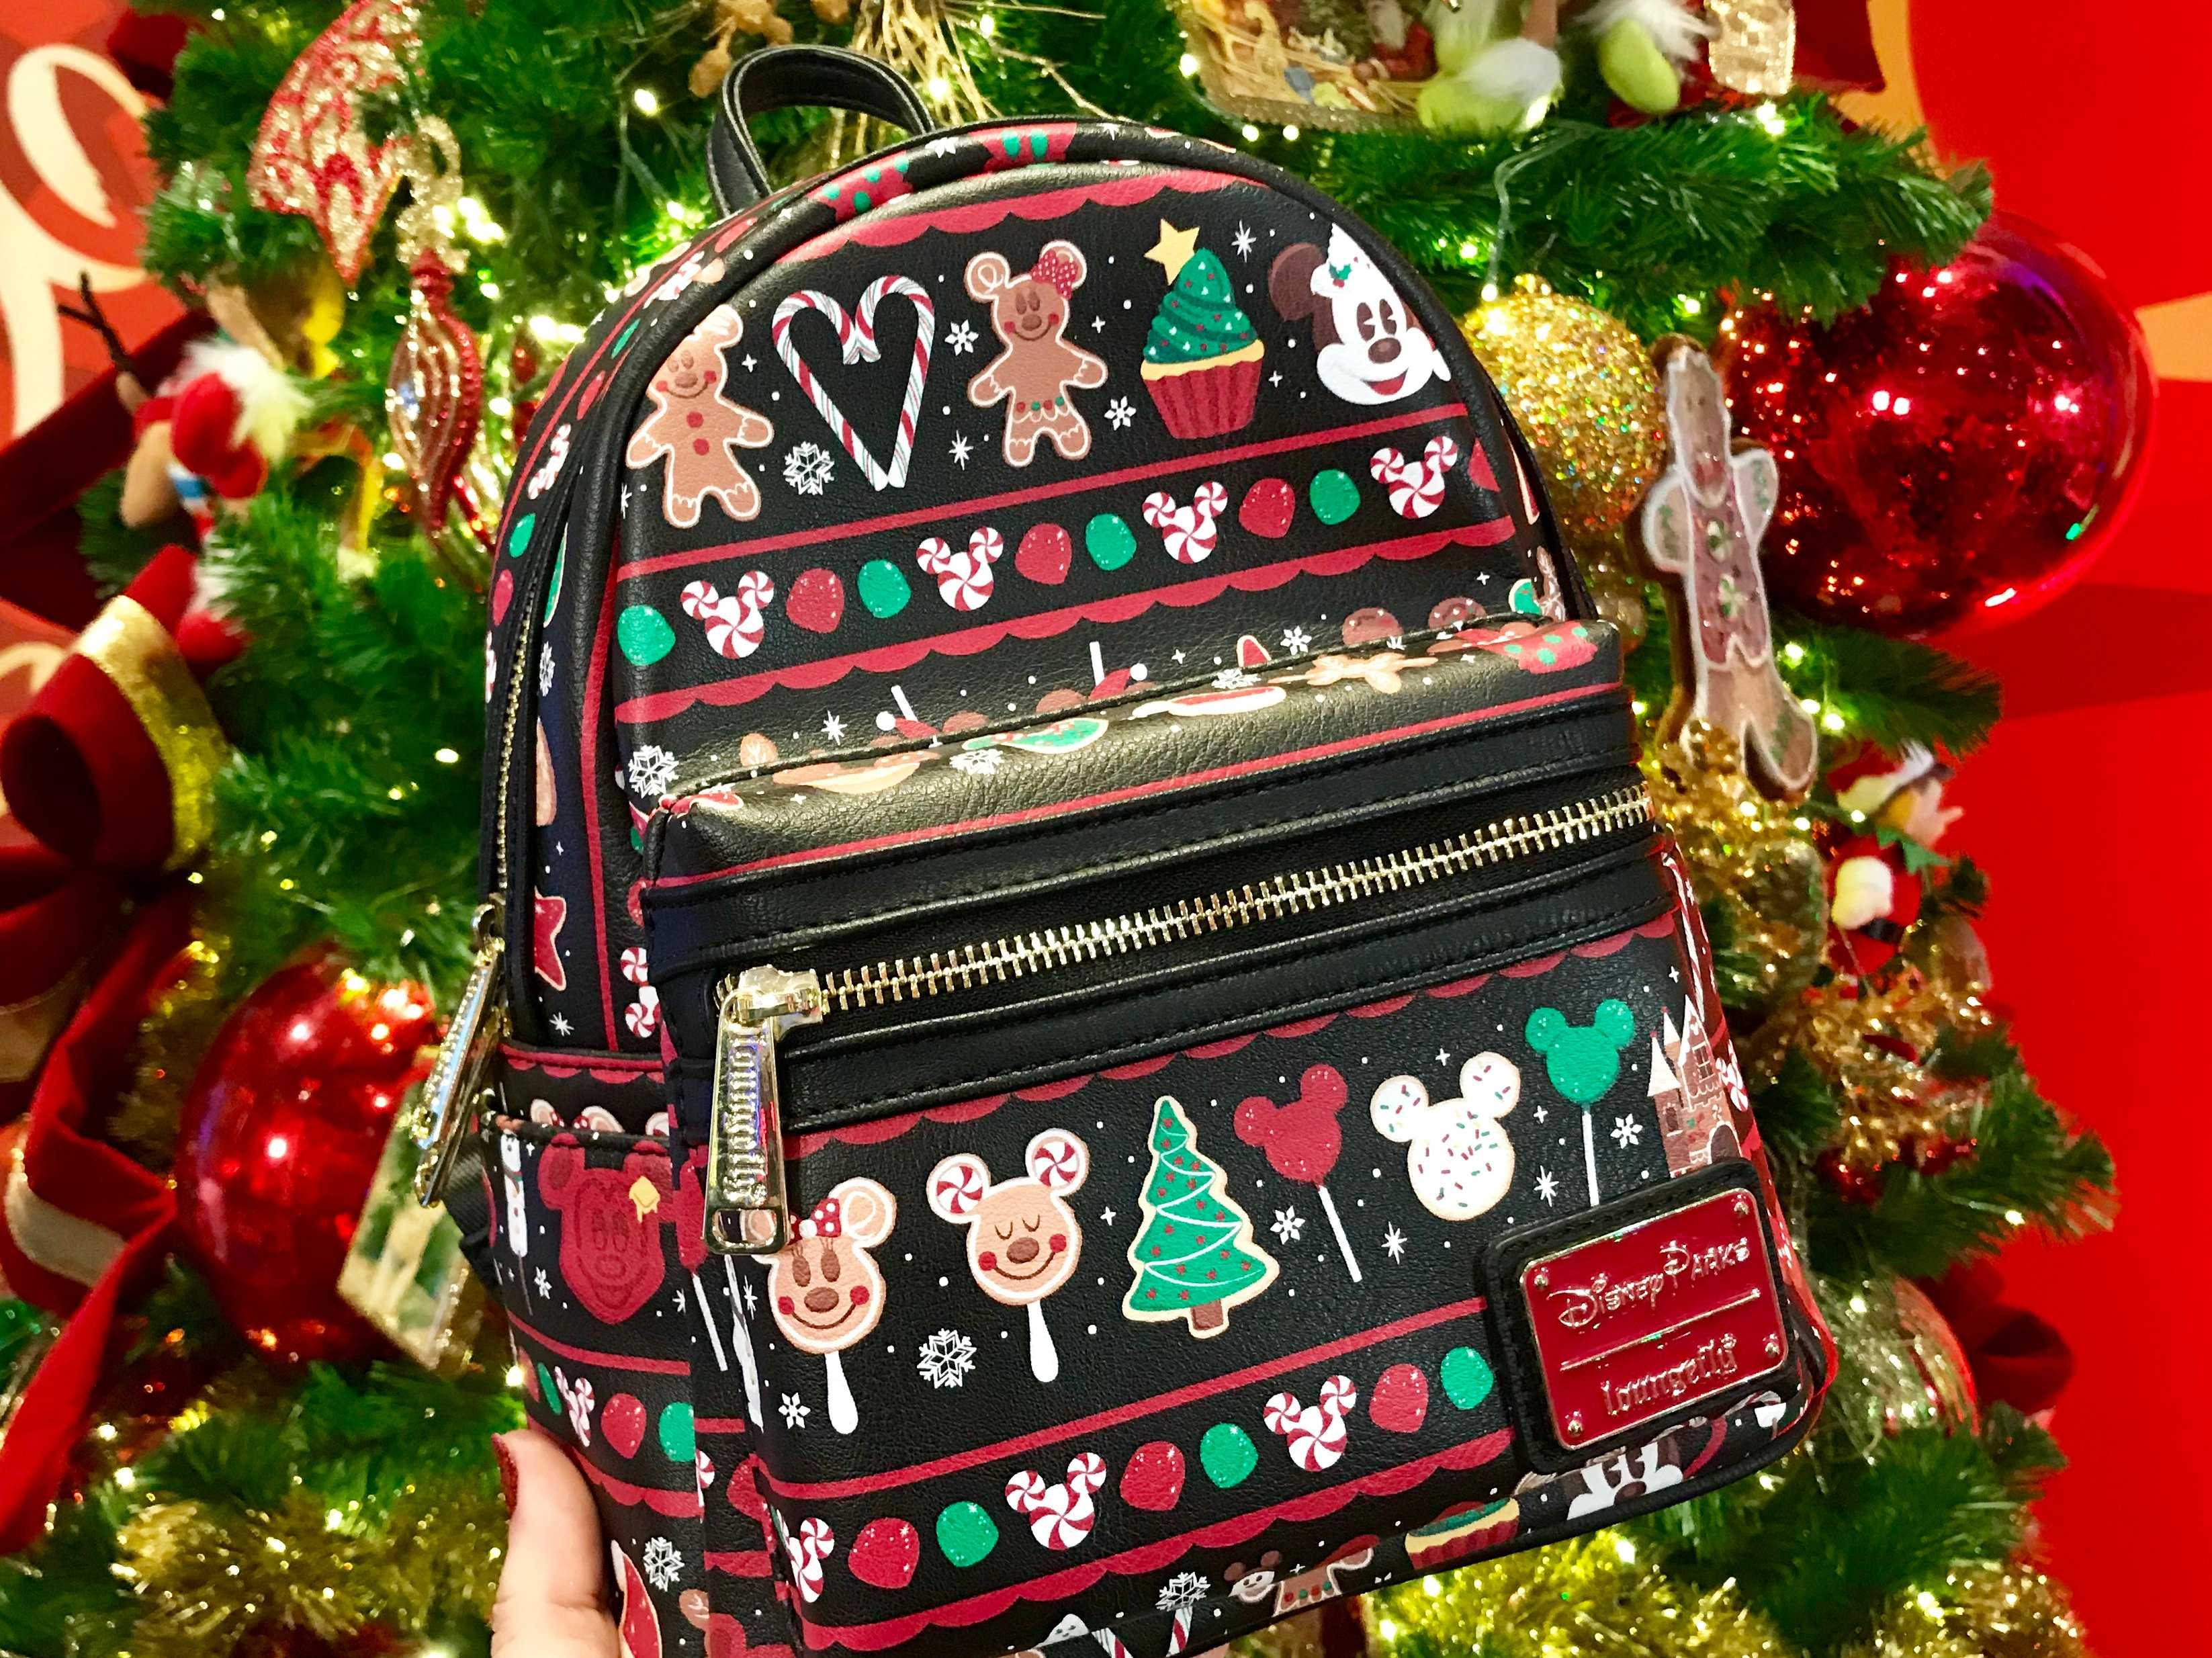 Festive New Disney Holiday Bags From Loungefly And More 5